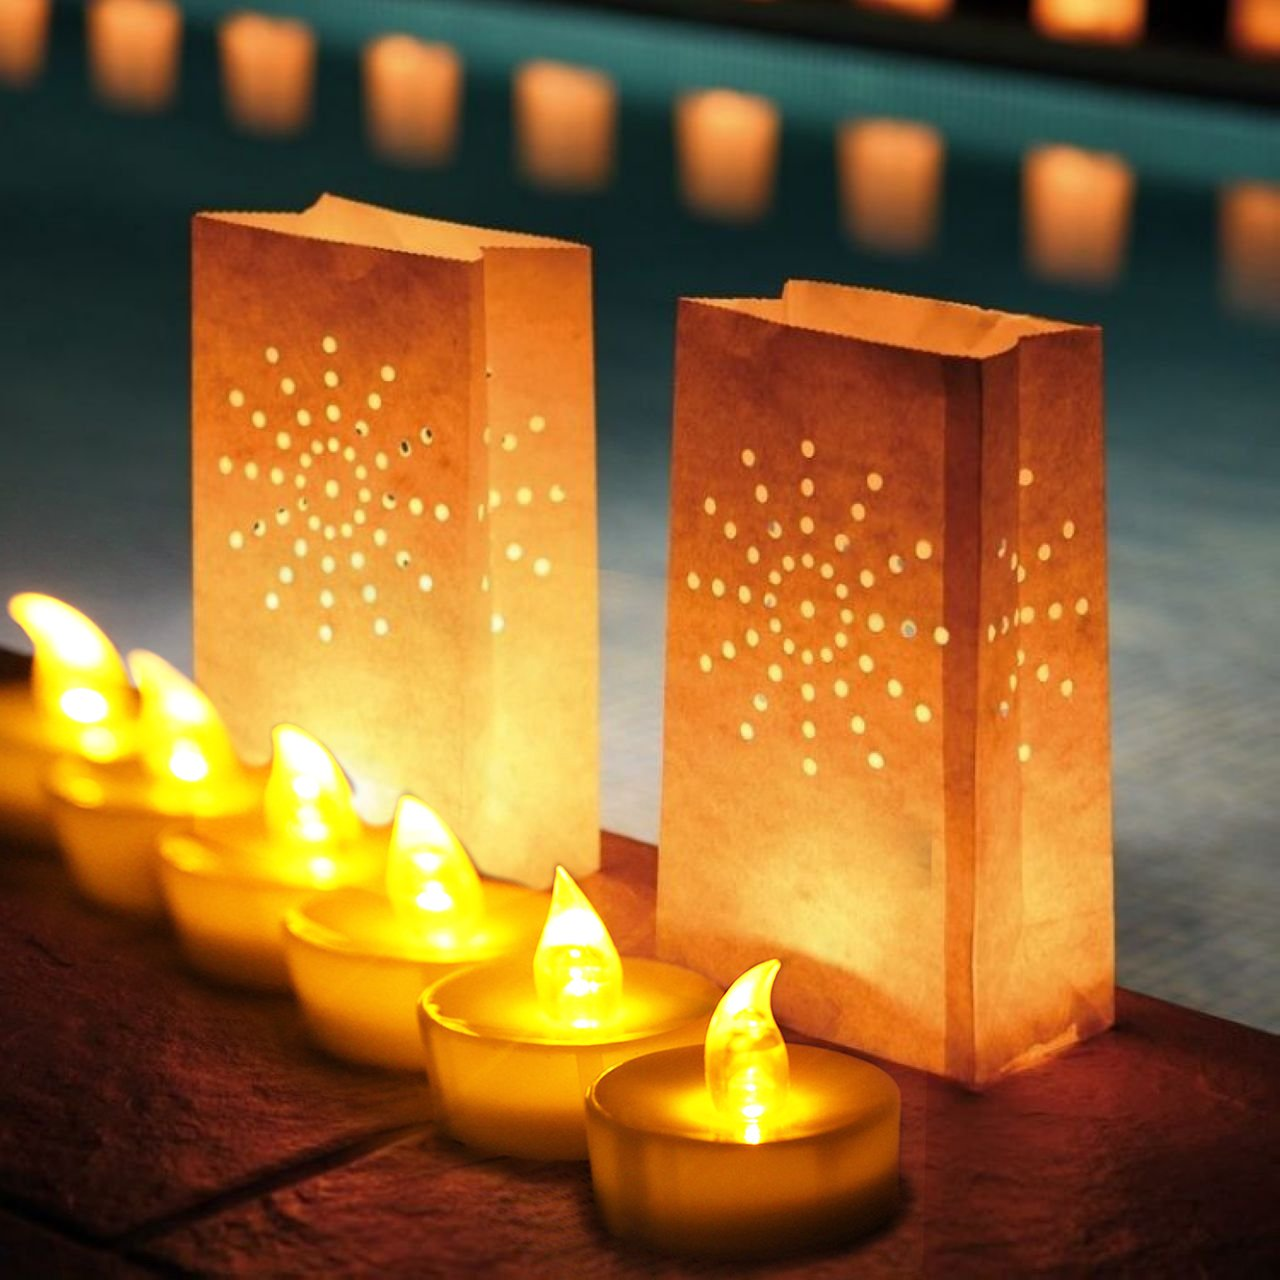 TBW Amber Flickering LED Tealight Candles with White Luminary Bags for Xmas BBQ Party Wedding Home Decration (24pcs Amber Light) by TBW